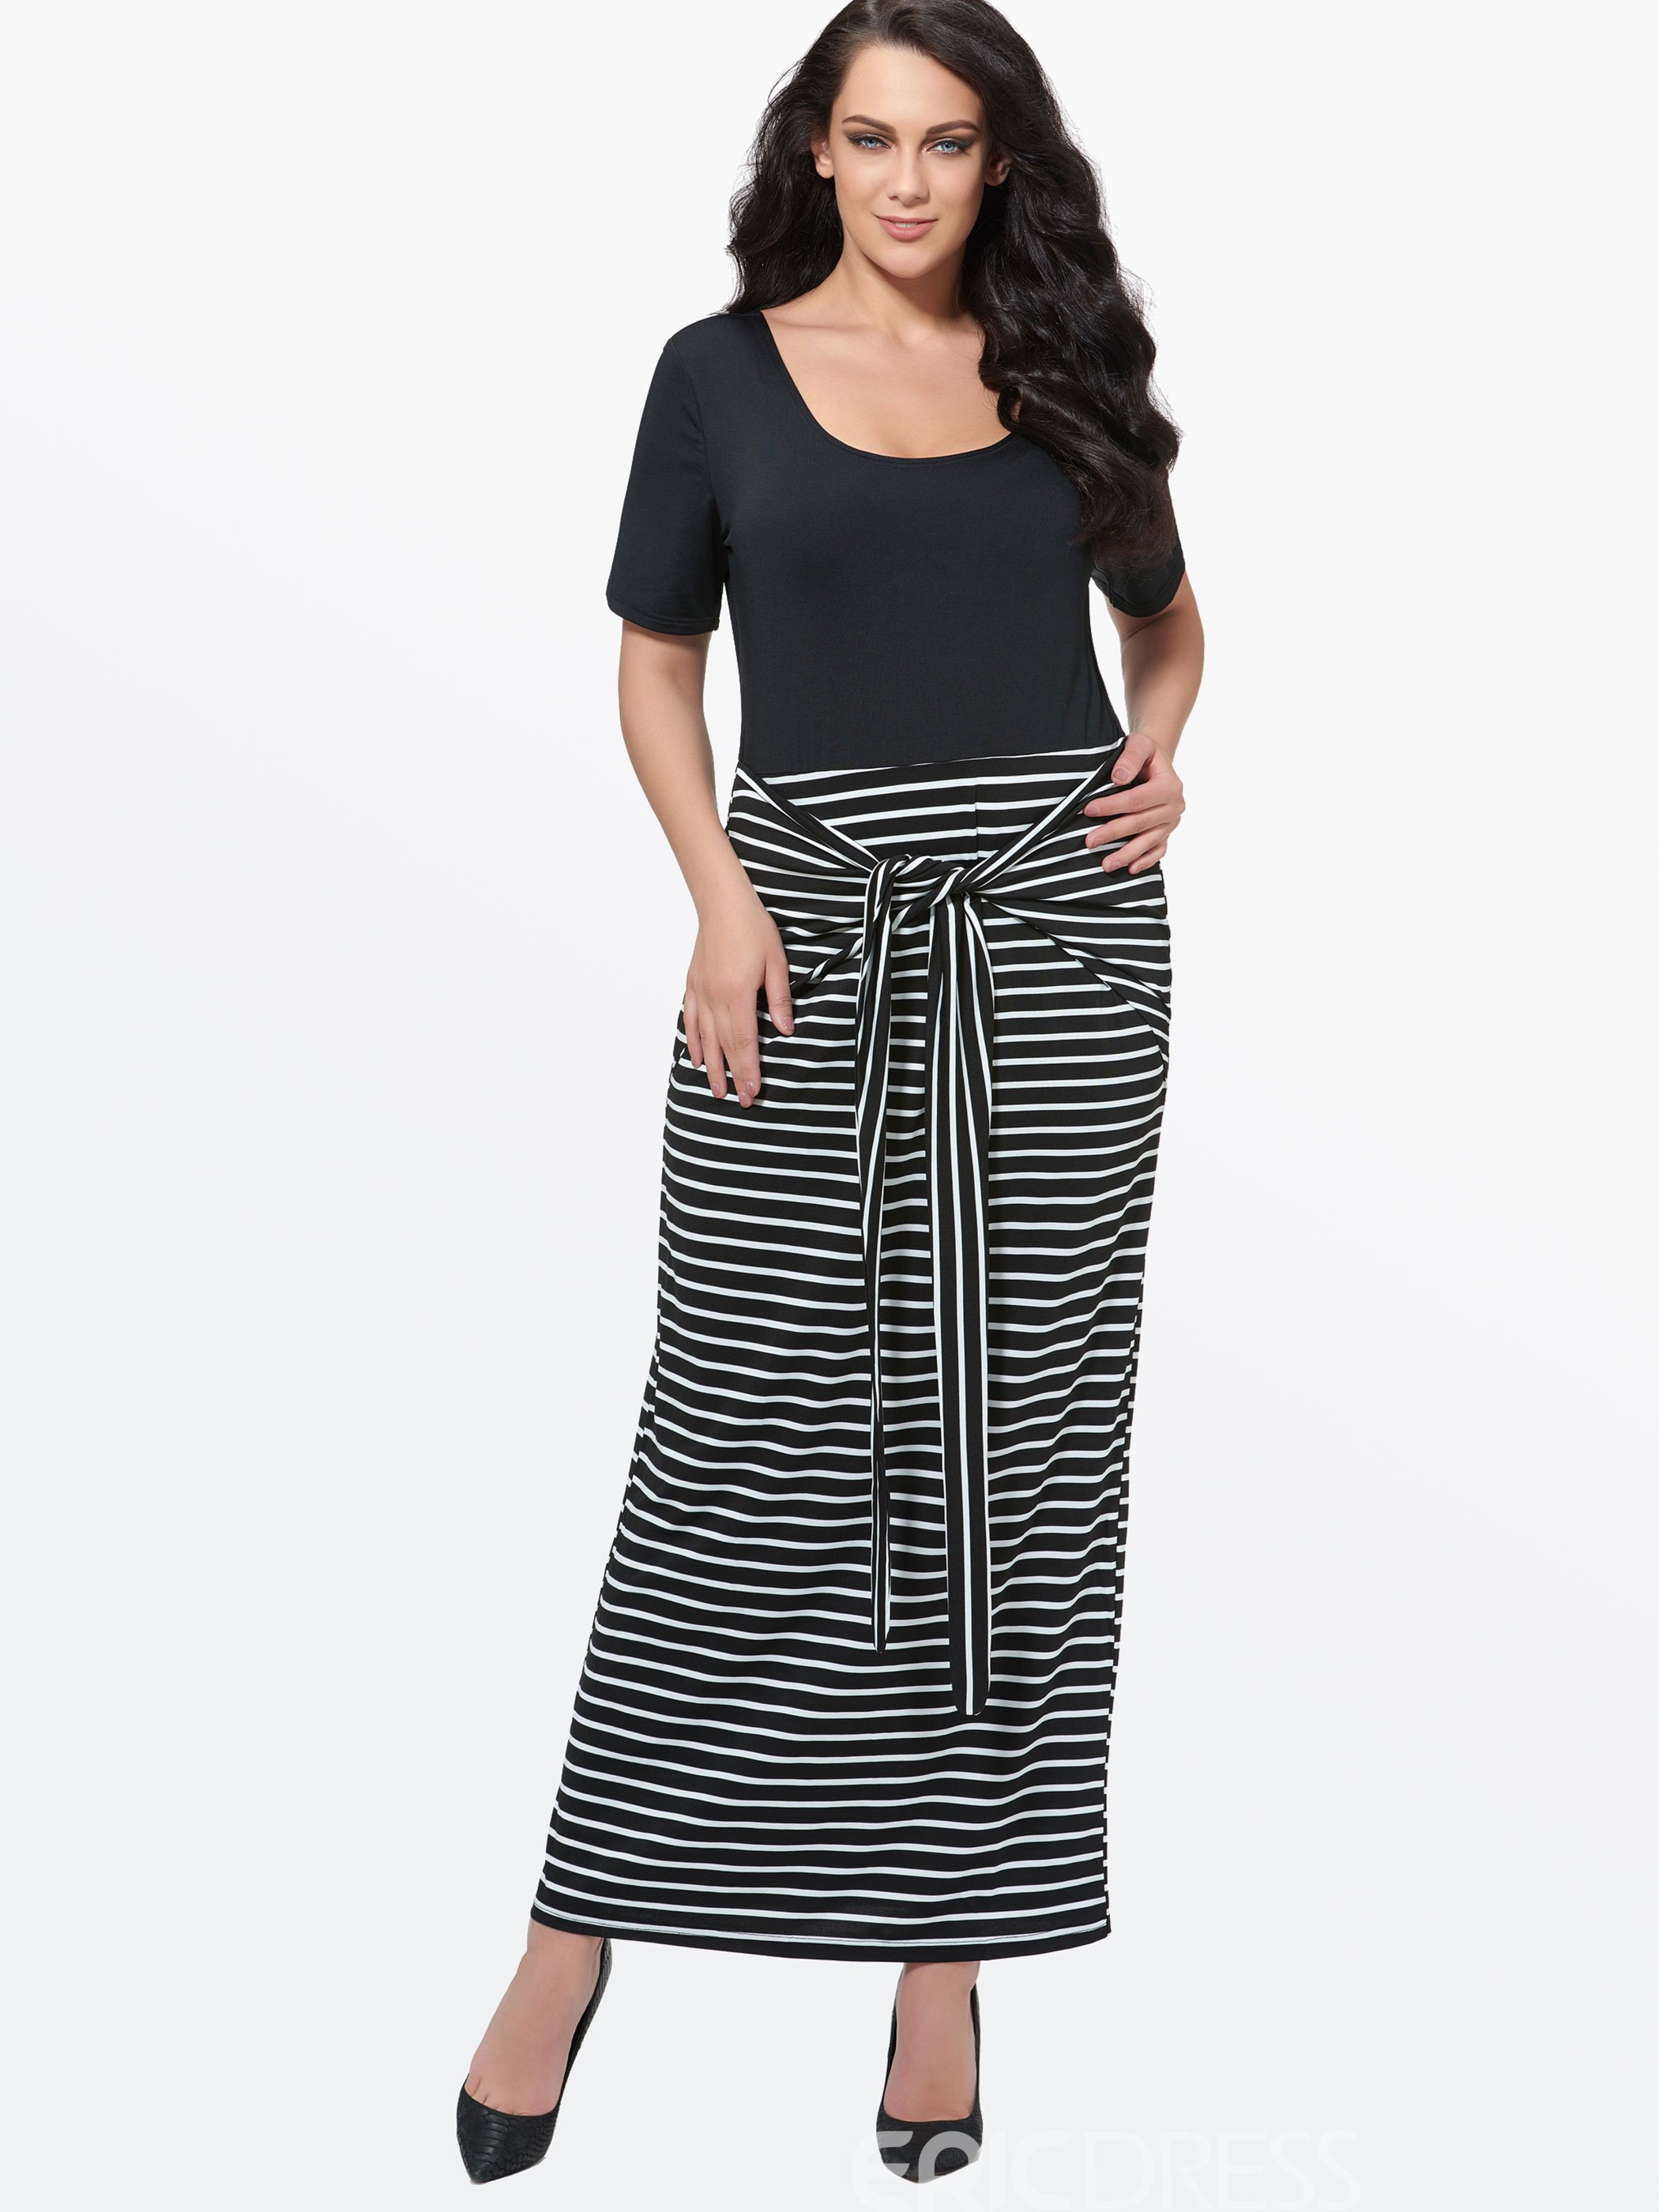 12c43dbf82 Ericdress Plus Size Short Sleeves Maxi Dress 11390881 - Ericdress.com